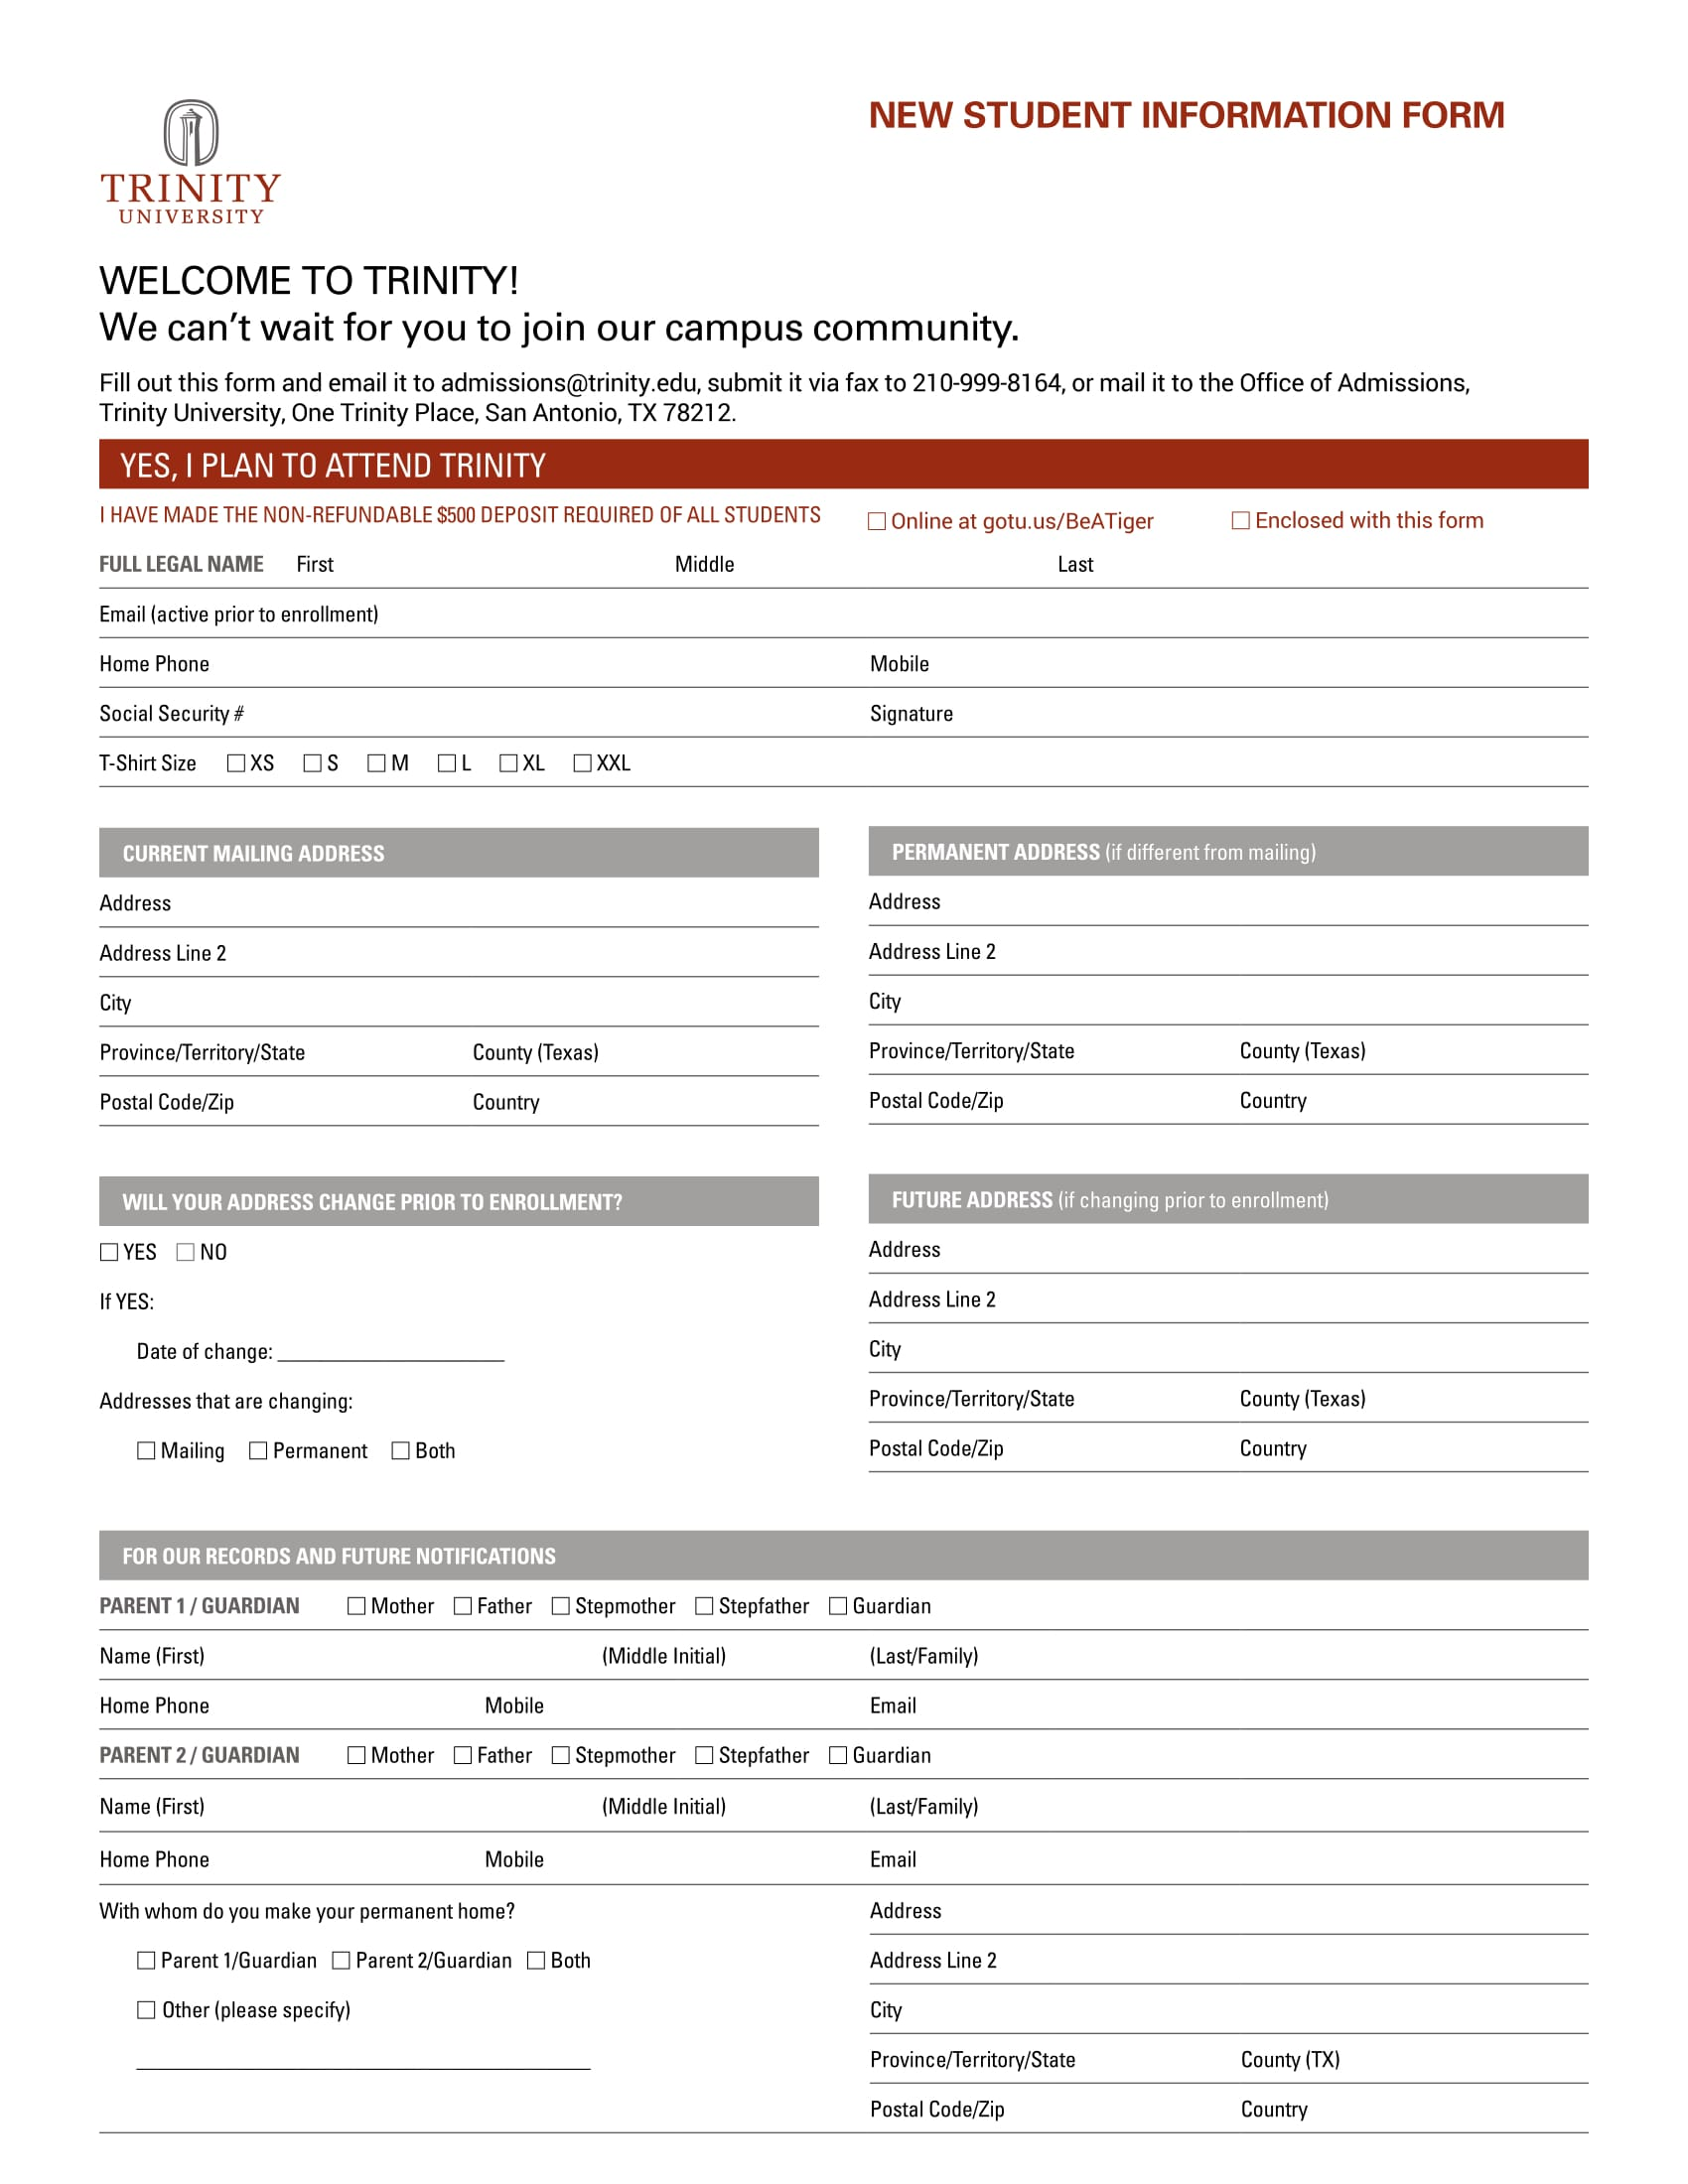 detailed new student information form 1